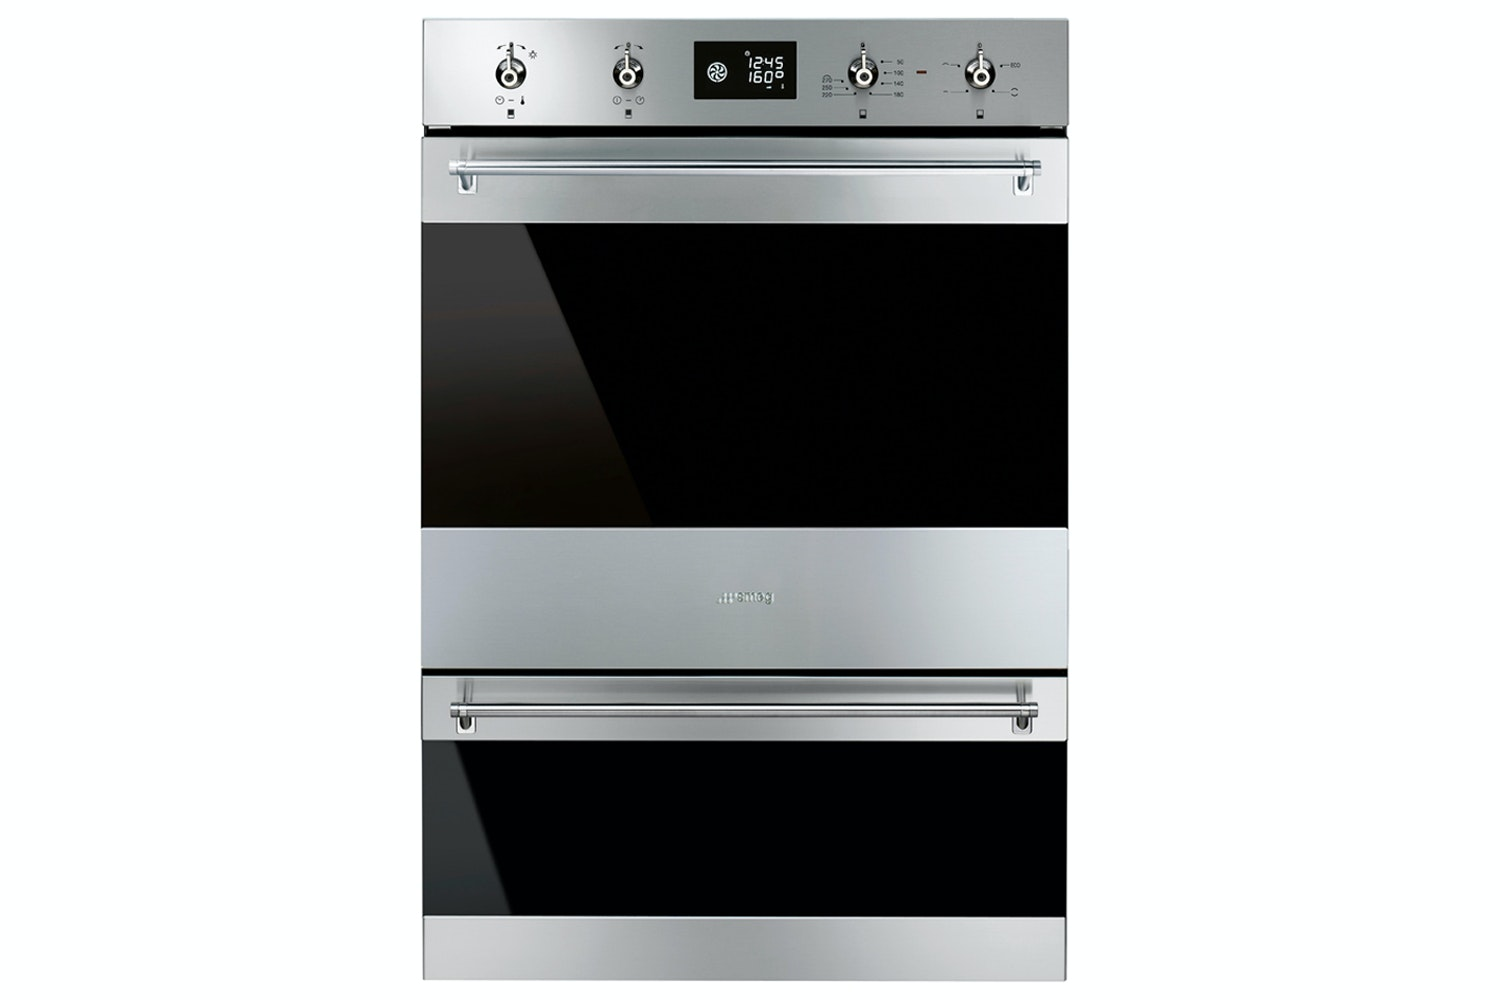 Smeg Built In Double Oven | DOSP6390X | Stainless Steel